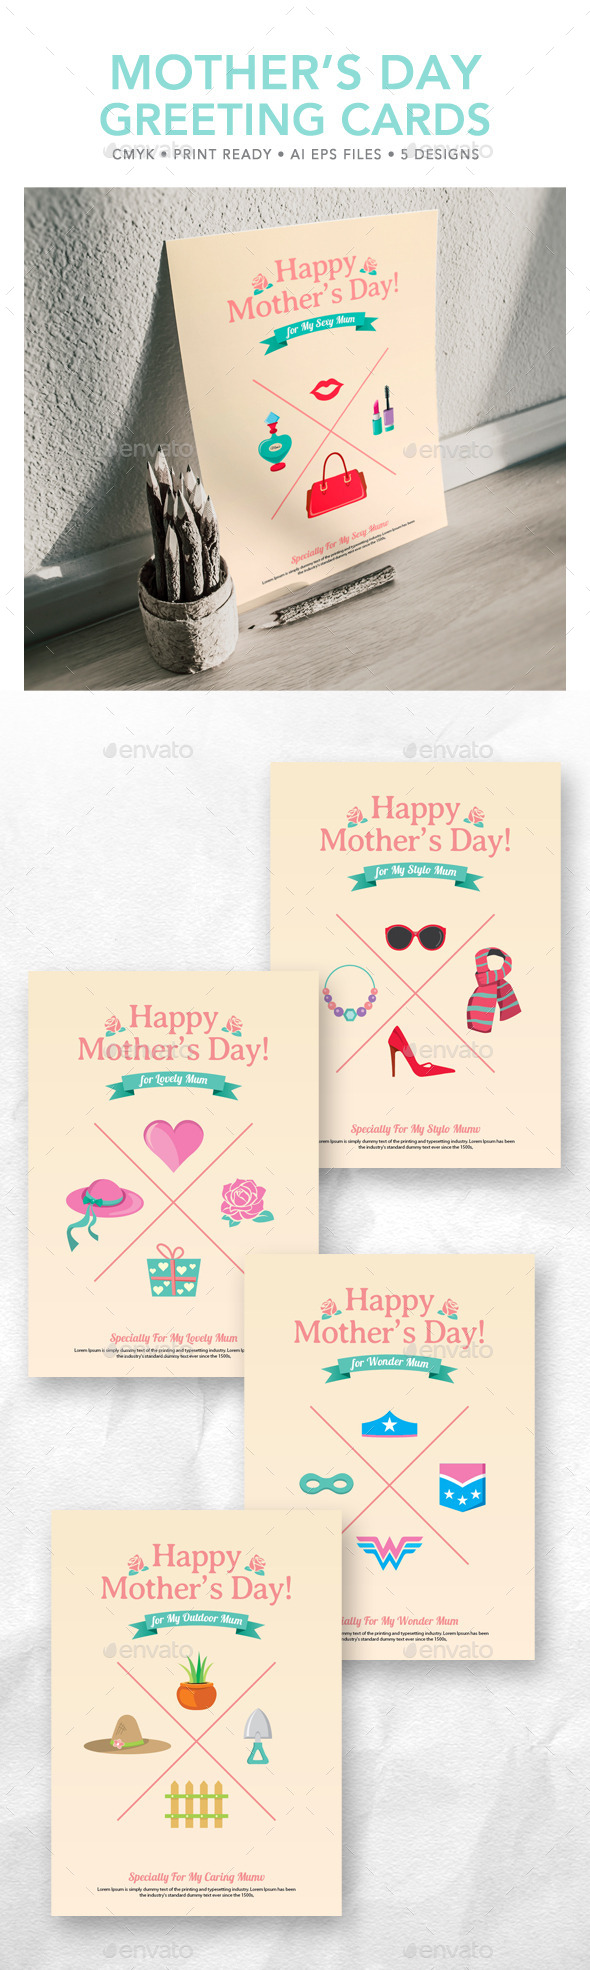 Mother's Day Greeting Card - Holiday Greeting Cards